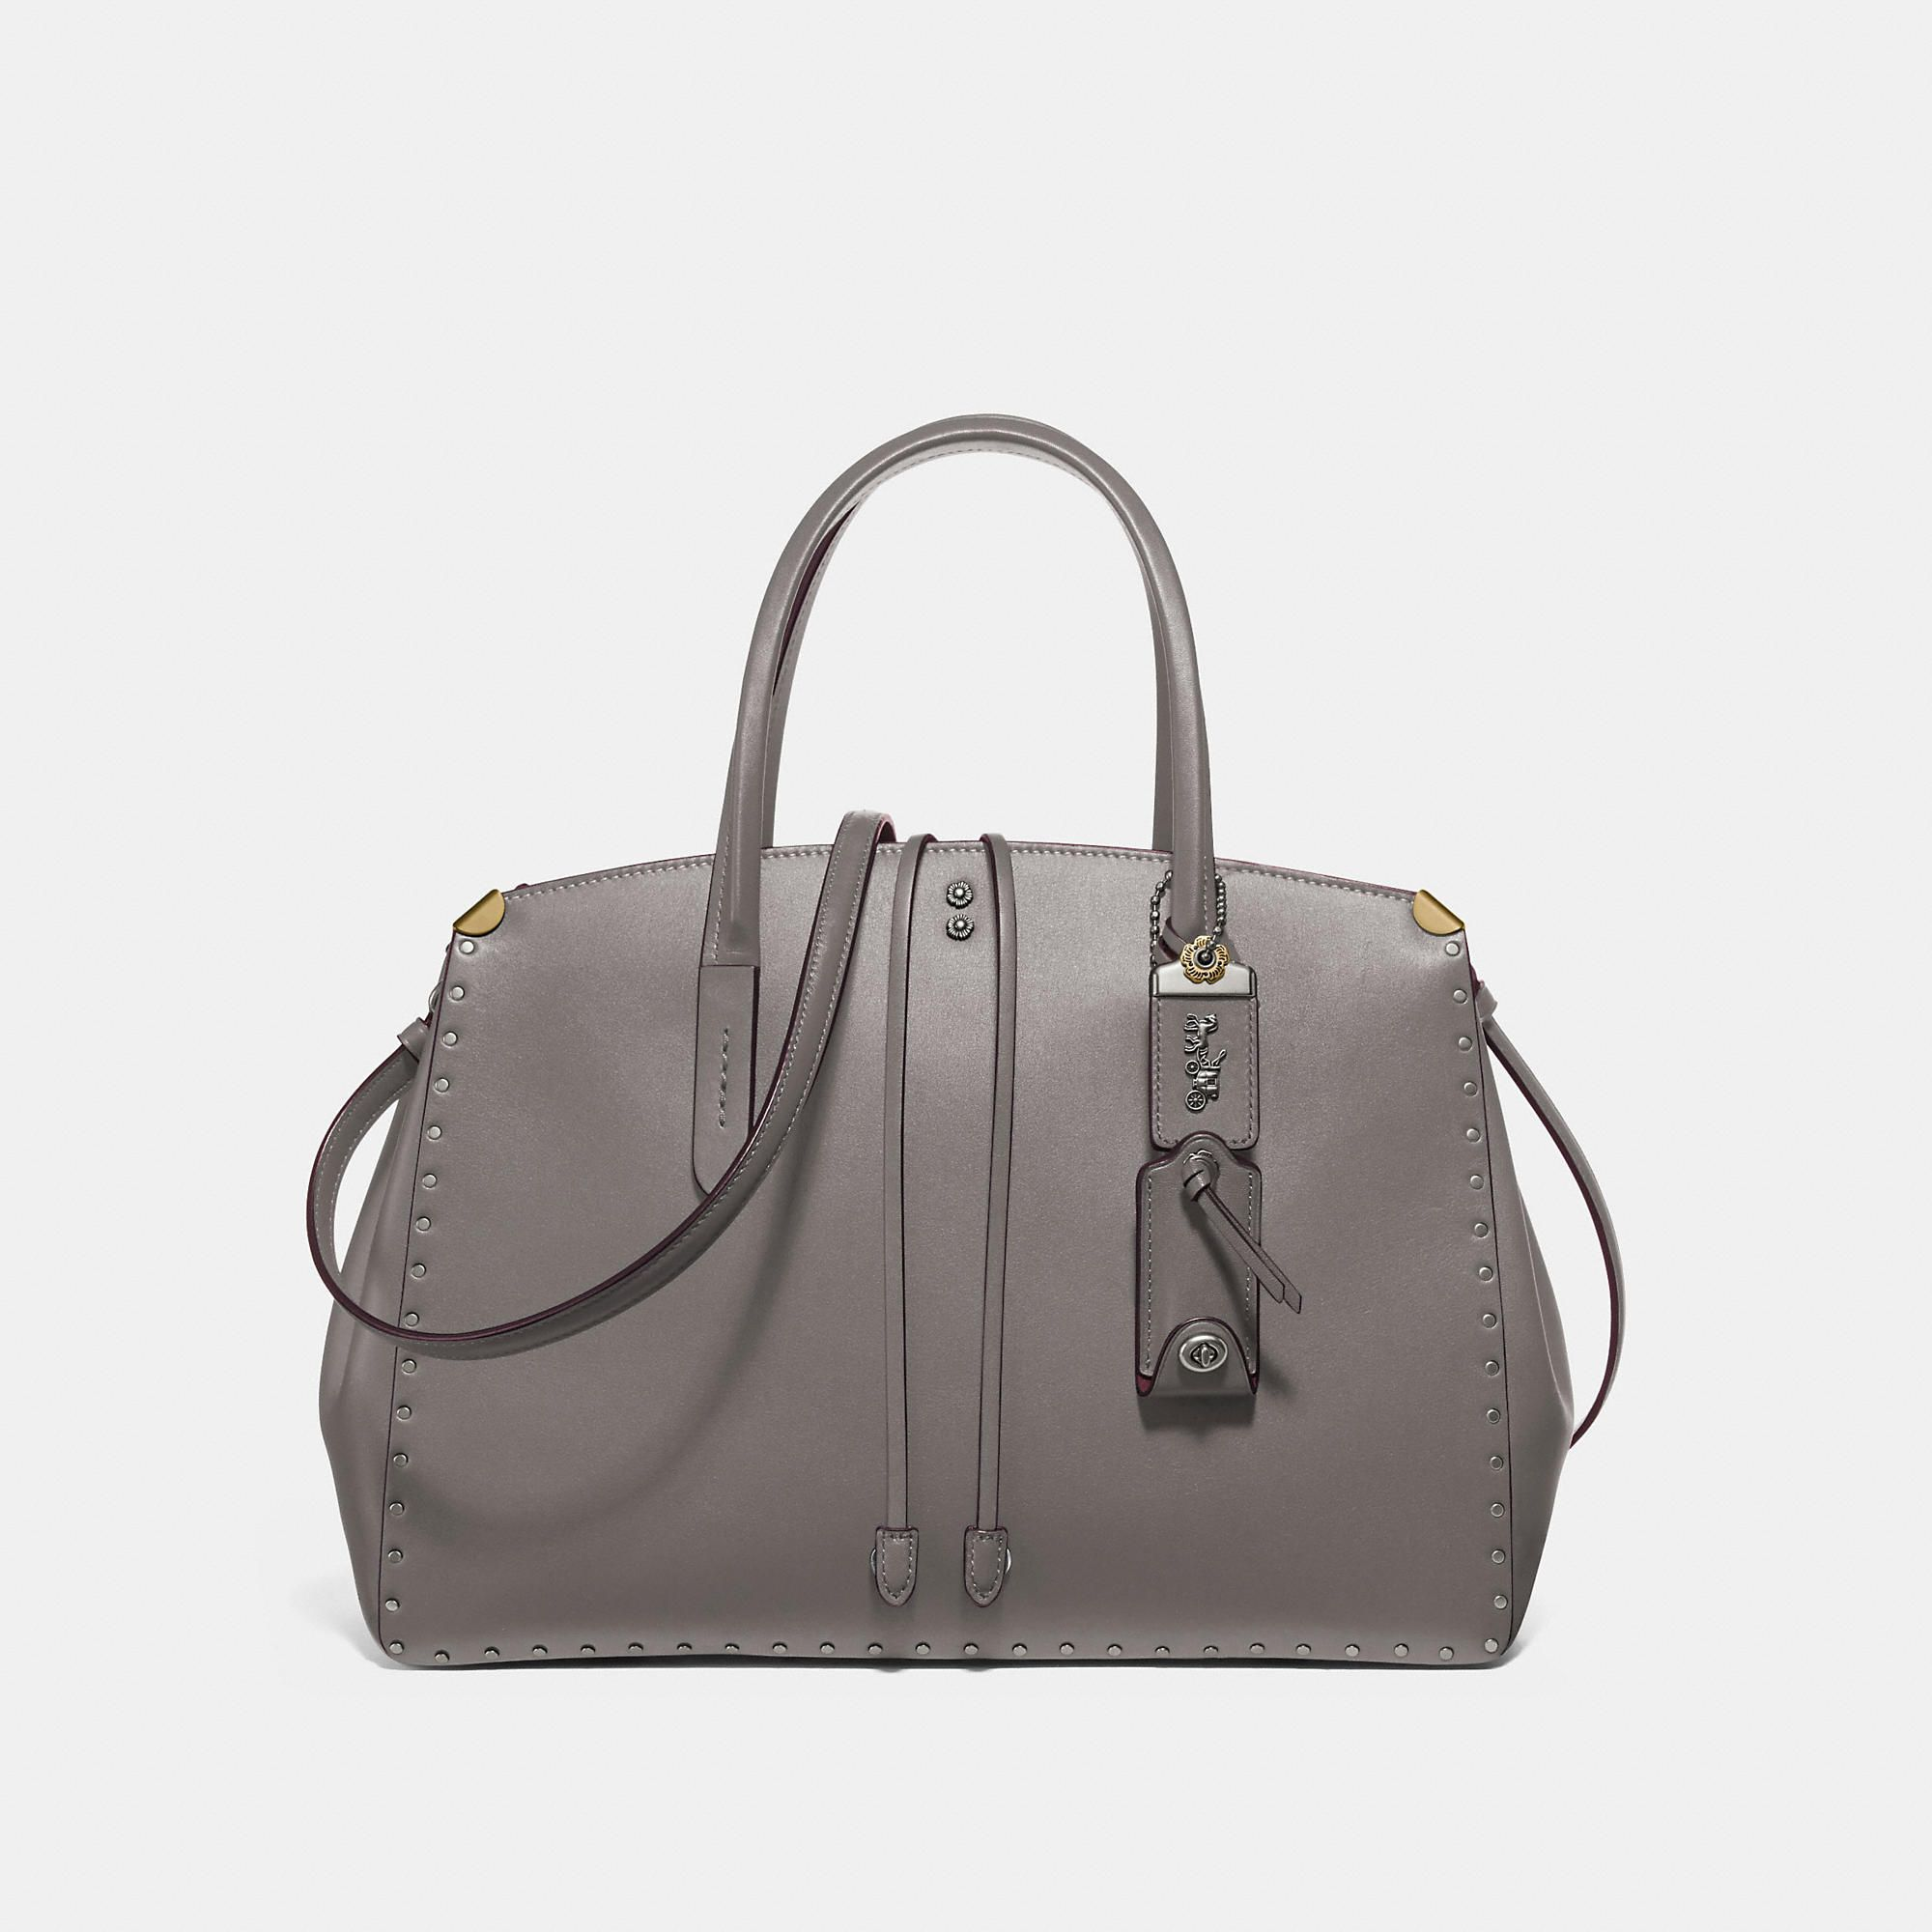 69ae2e447 Cooper carryall with rivets | Products | Bags, Luxury bags, Black